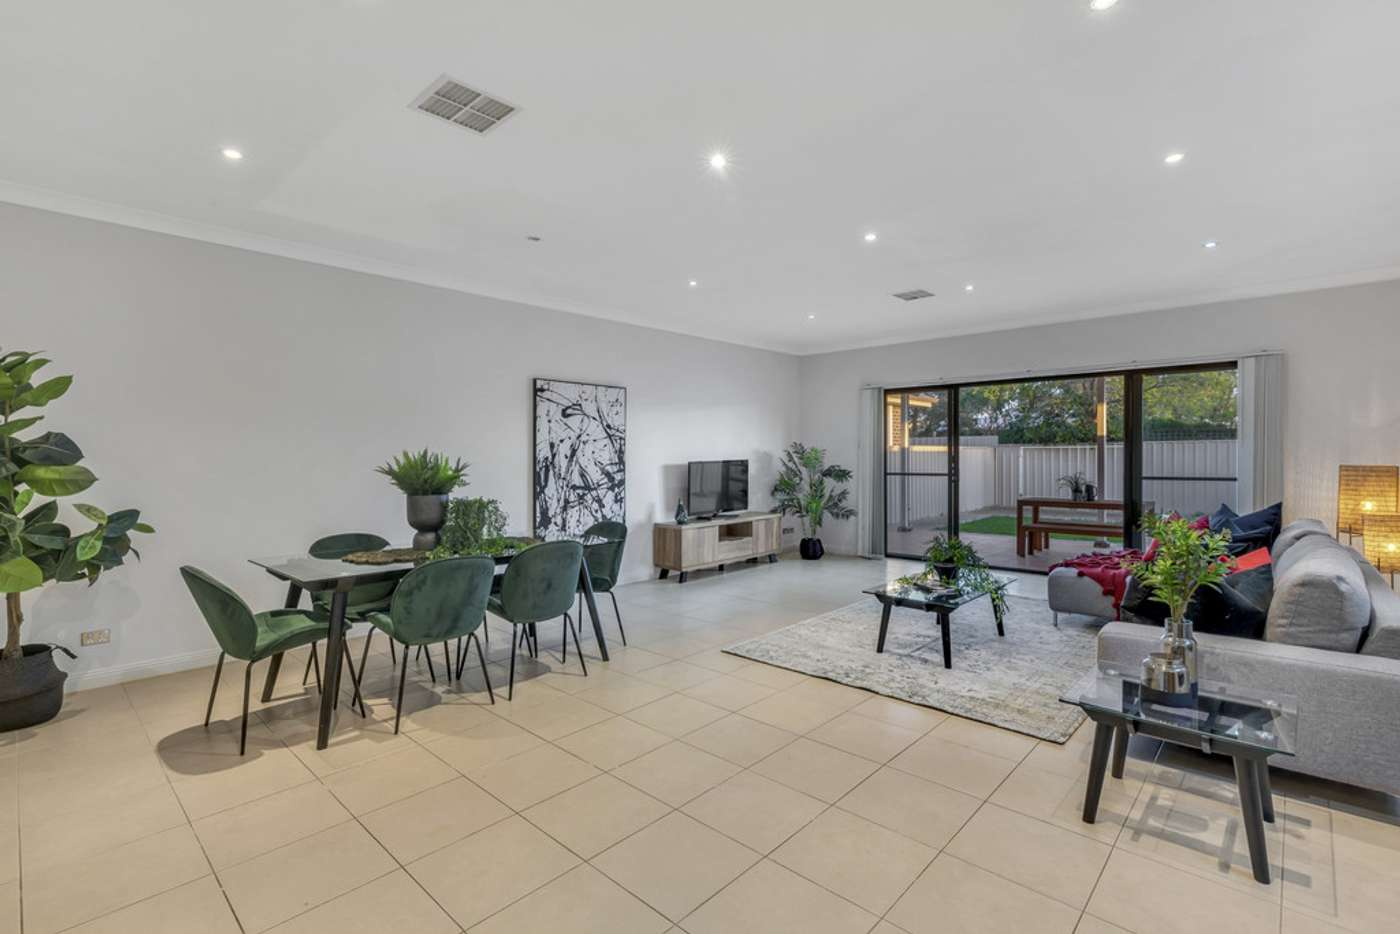 Fifth view of Homely house listing, 3 Pitman Avenue, Woodville West SA 5011